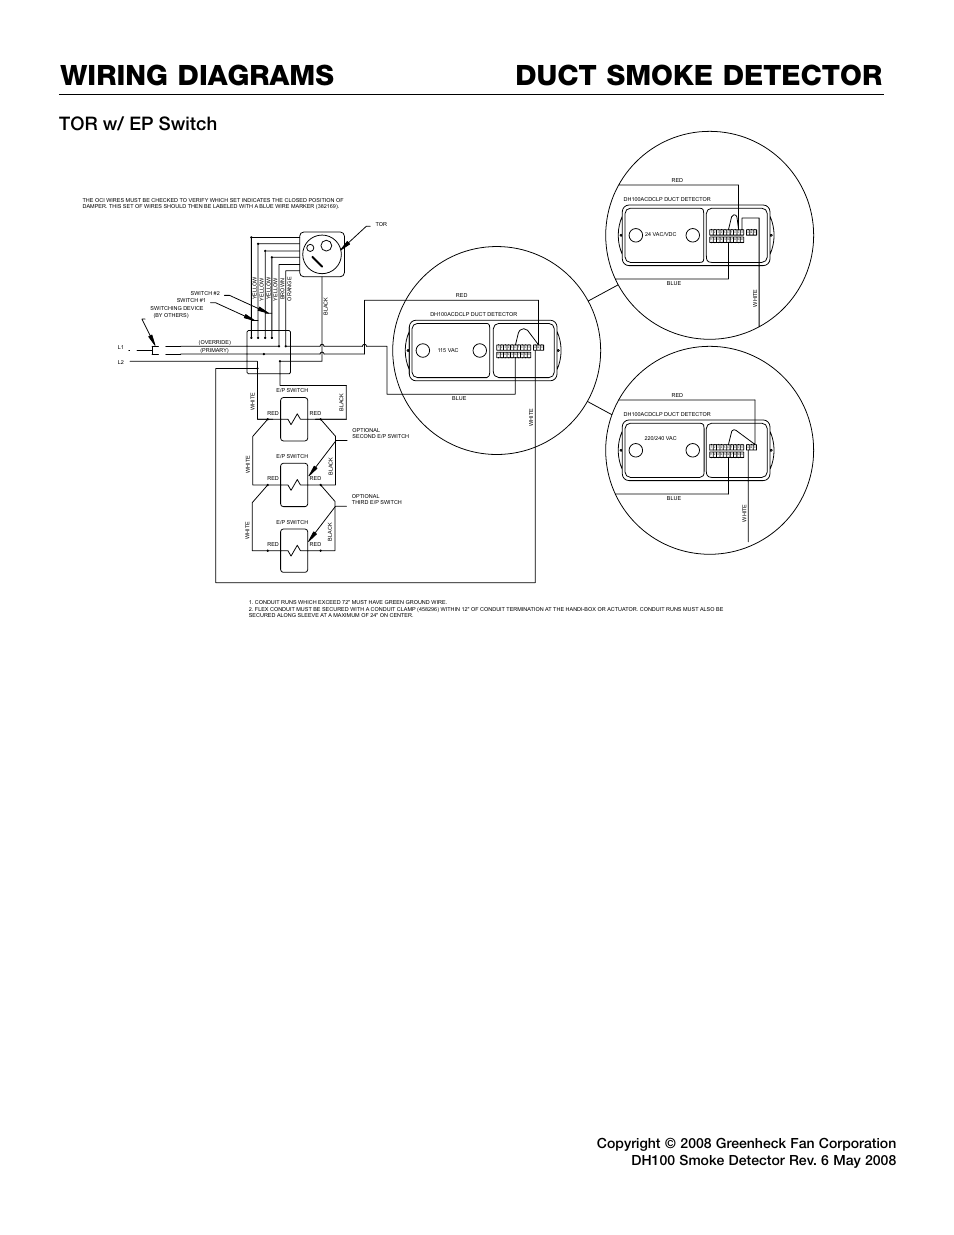 Duct smoke detector wiring diagrams, Tor w/ ep switch | Greenheck Fan  DH100ACDCLP User